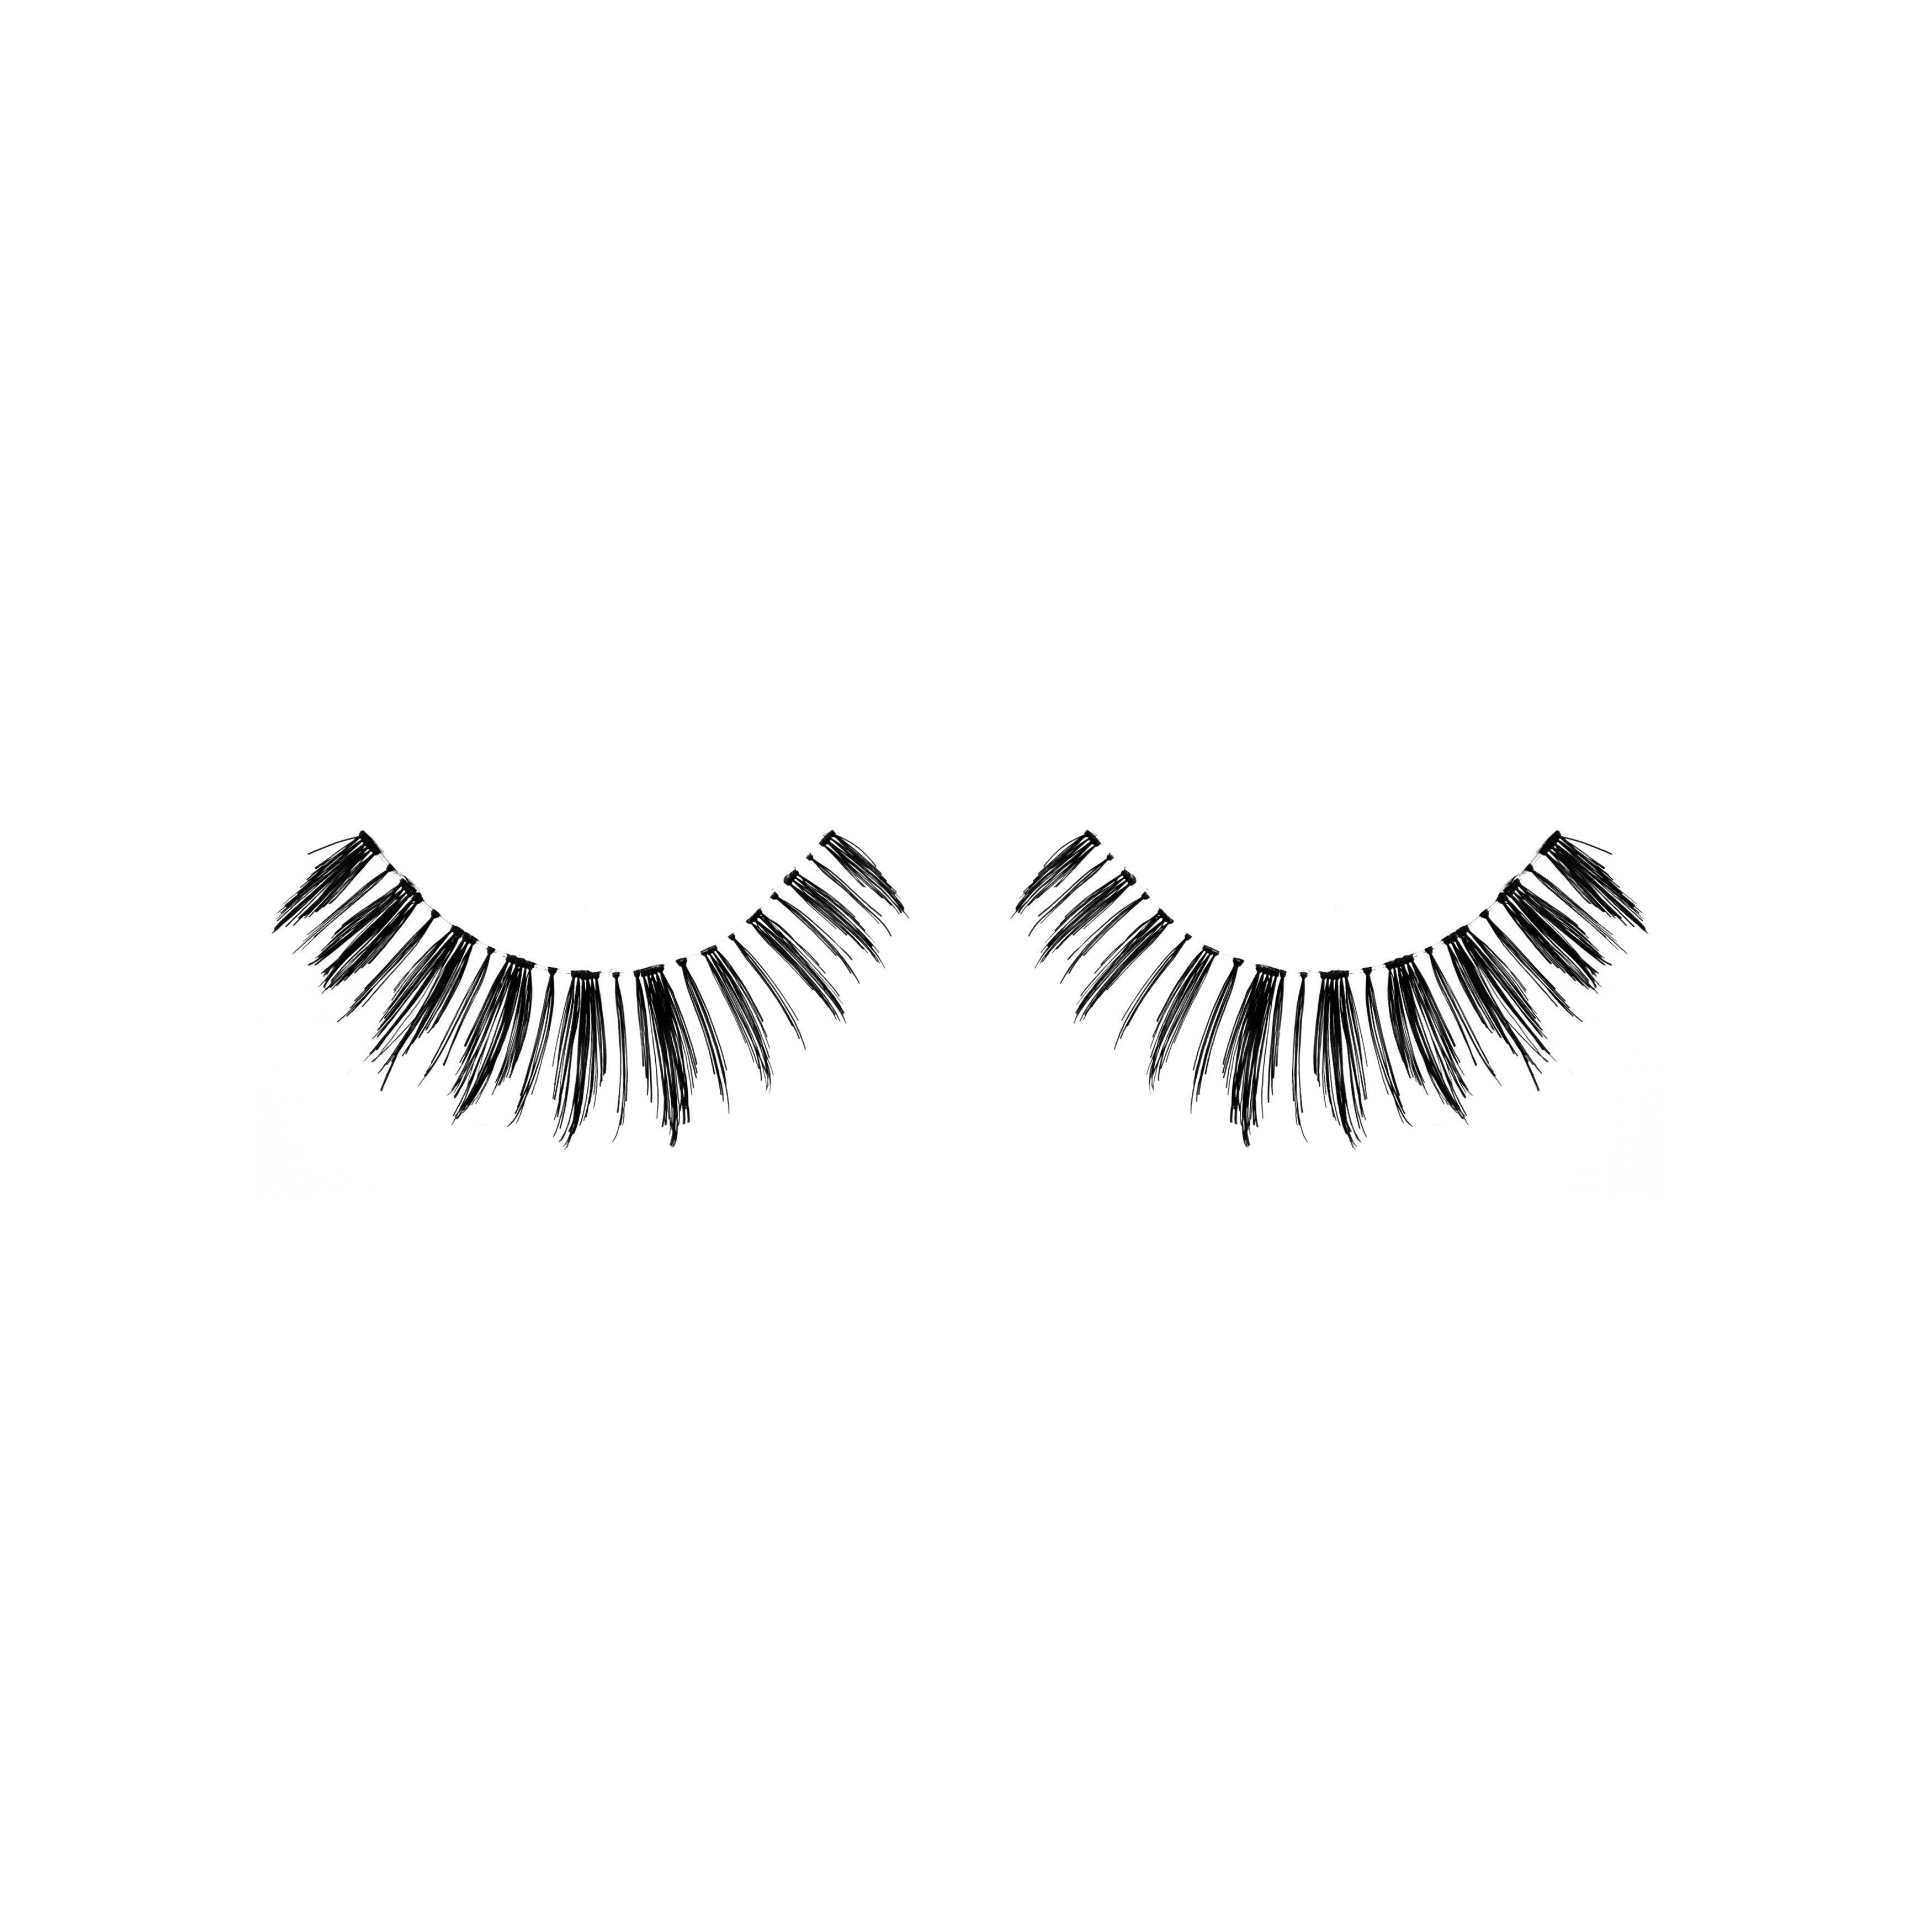 RODEO-MORPHE LASH, view larger image